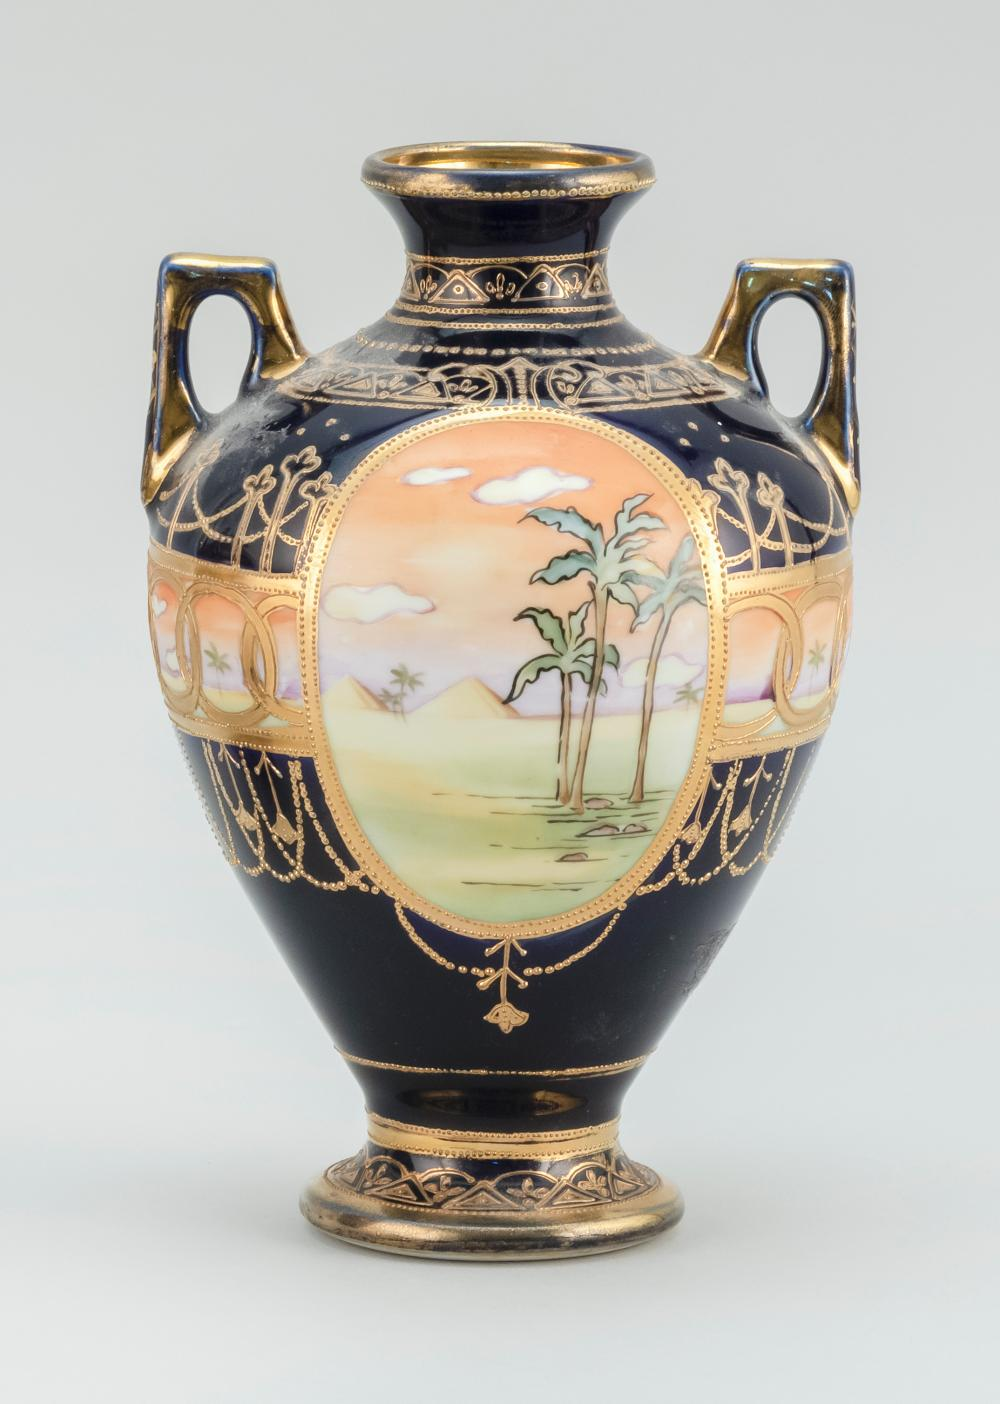 NIPPON PORCELAIN VASE In urn form, with cartouches of ostriches in an Egyptian landscape on a cobalt blue and gilt ground. Van Patte...